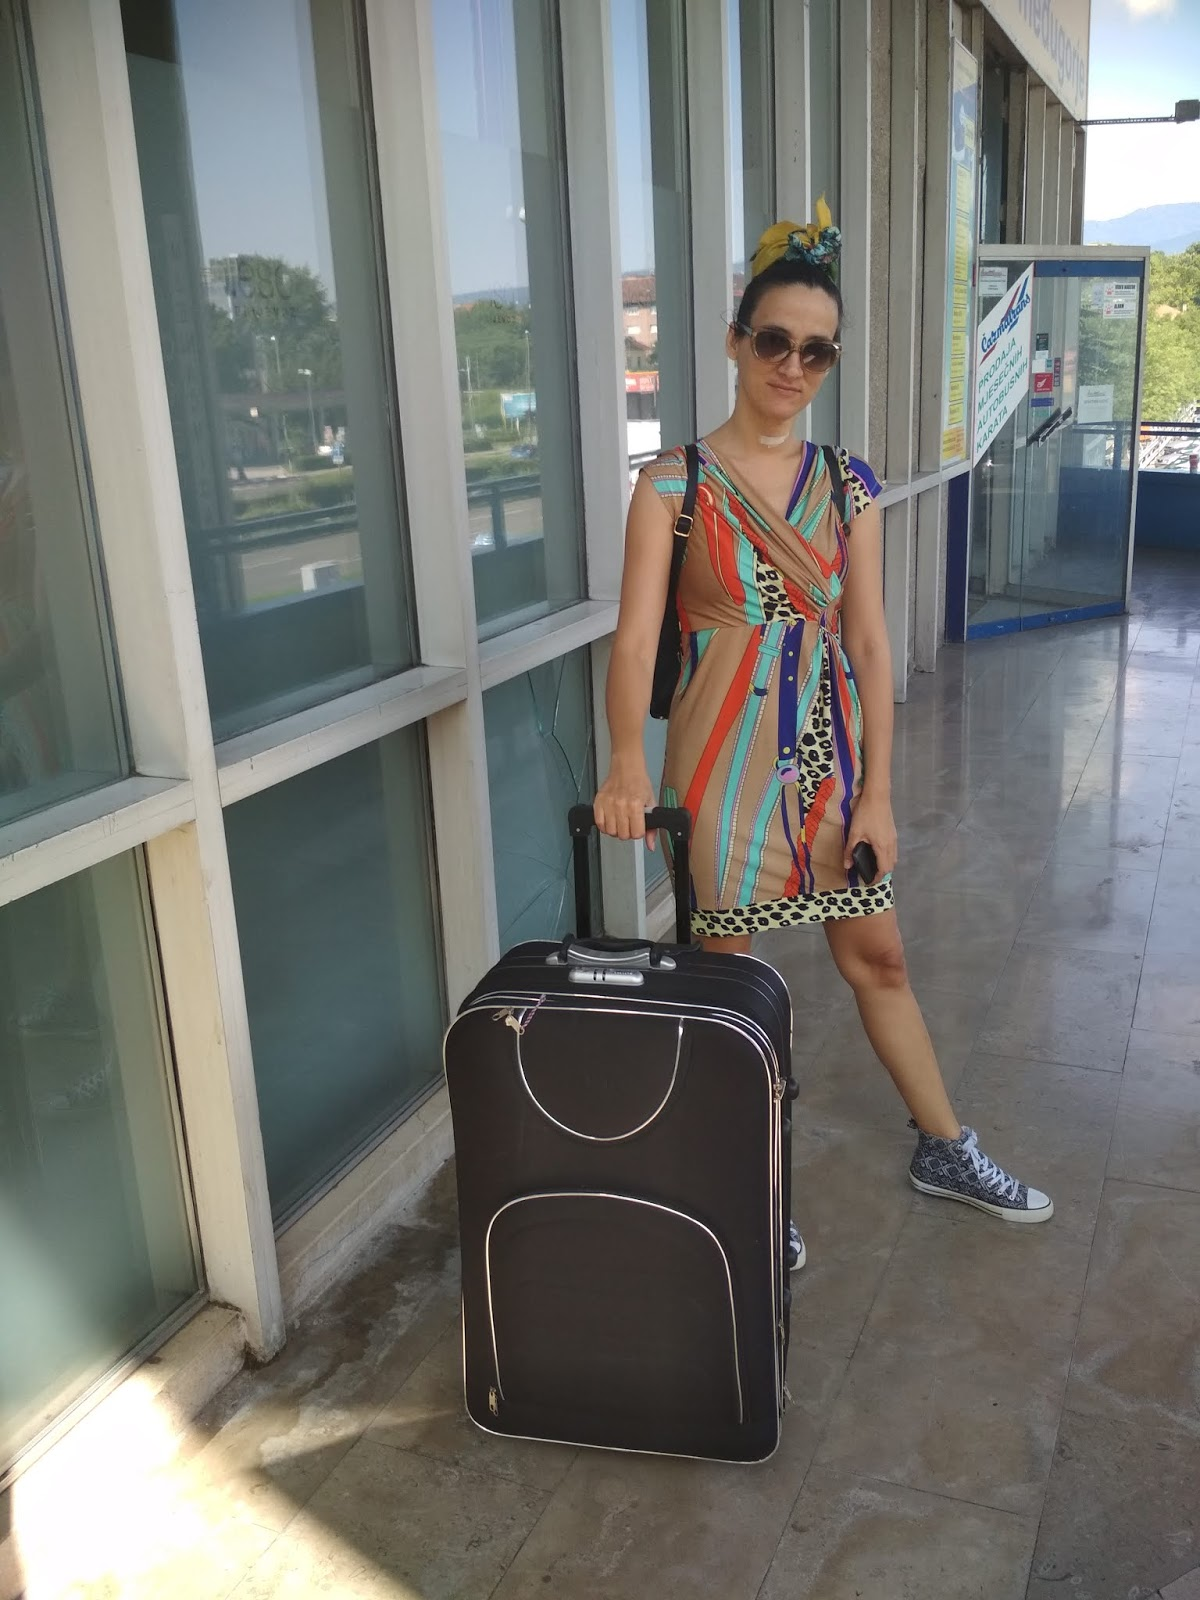 #WhatToWear When #Travelling? A Printed #Dress Worn With #Sneakers (Travel Outfit Proposal)